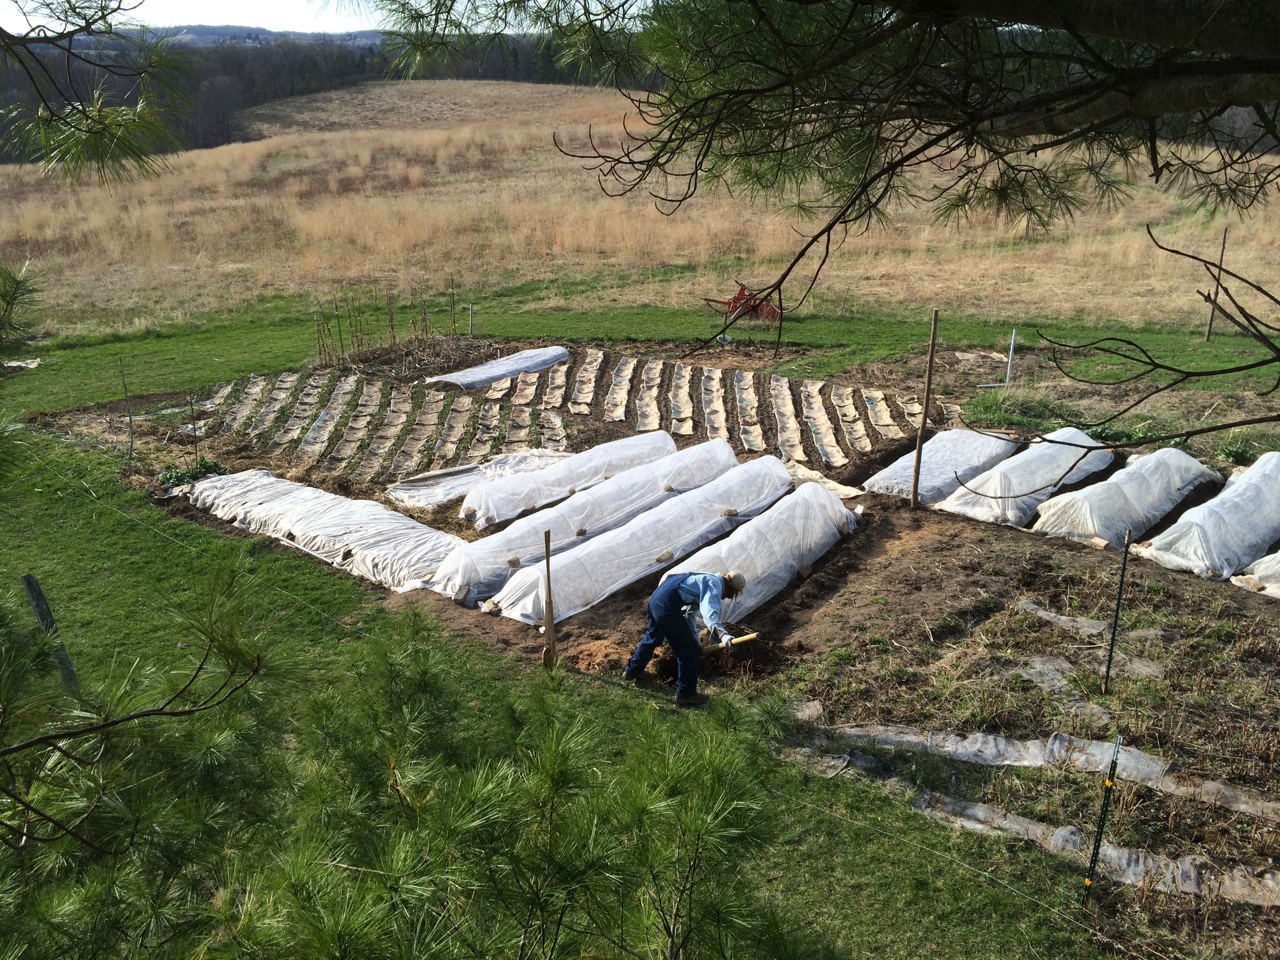 Rob tending the soil and the CSA beds. Photo by Ian Aley, 4 - 25 - 15